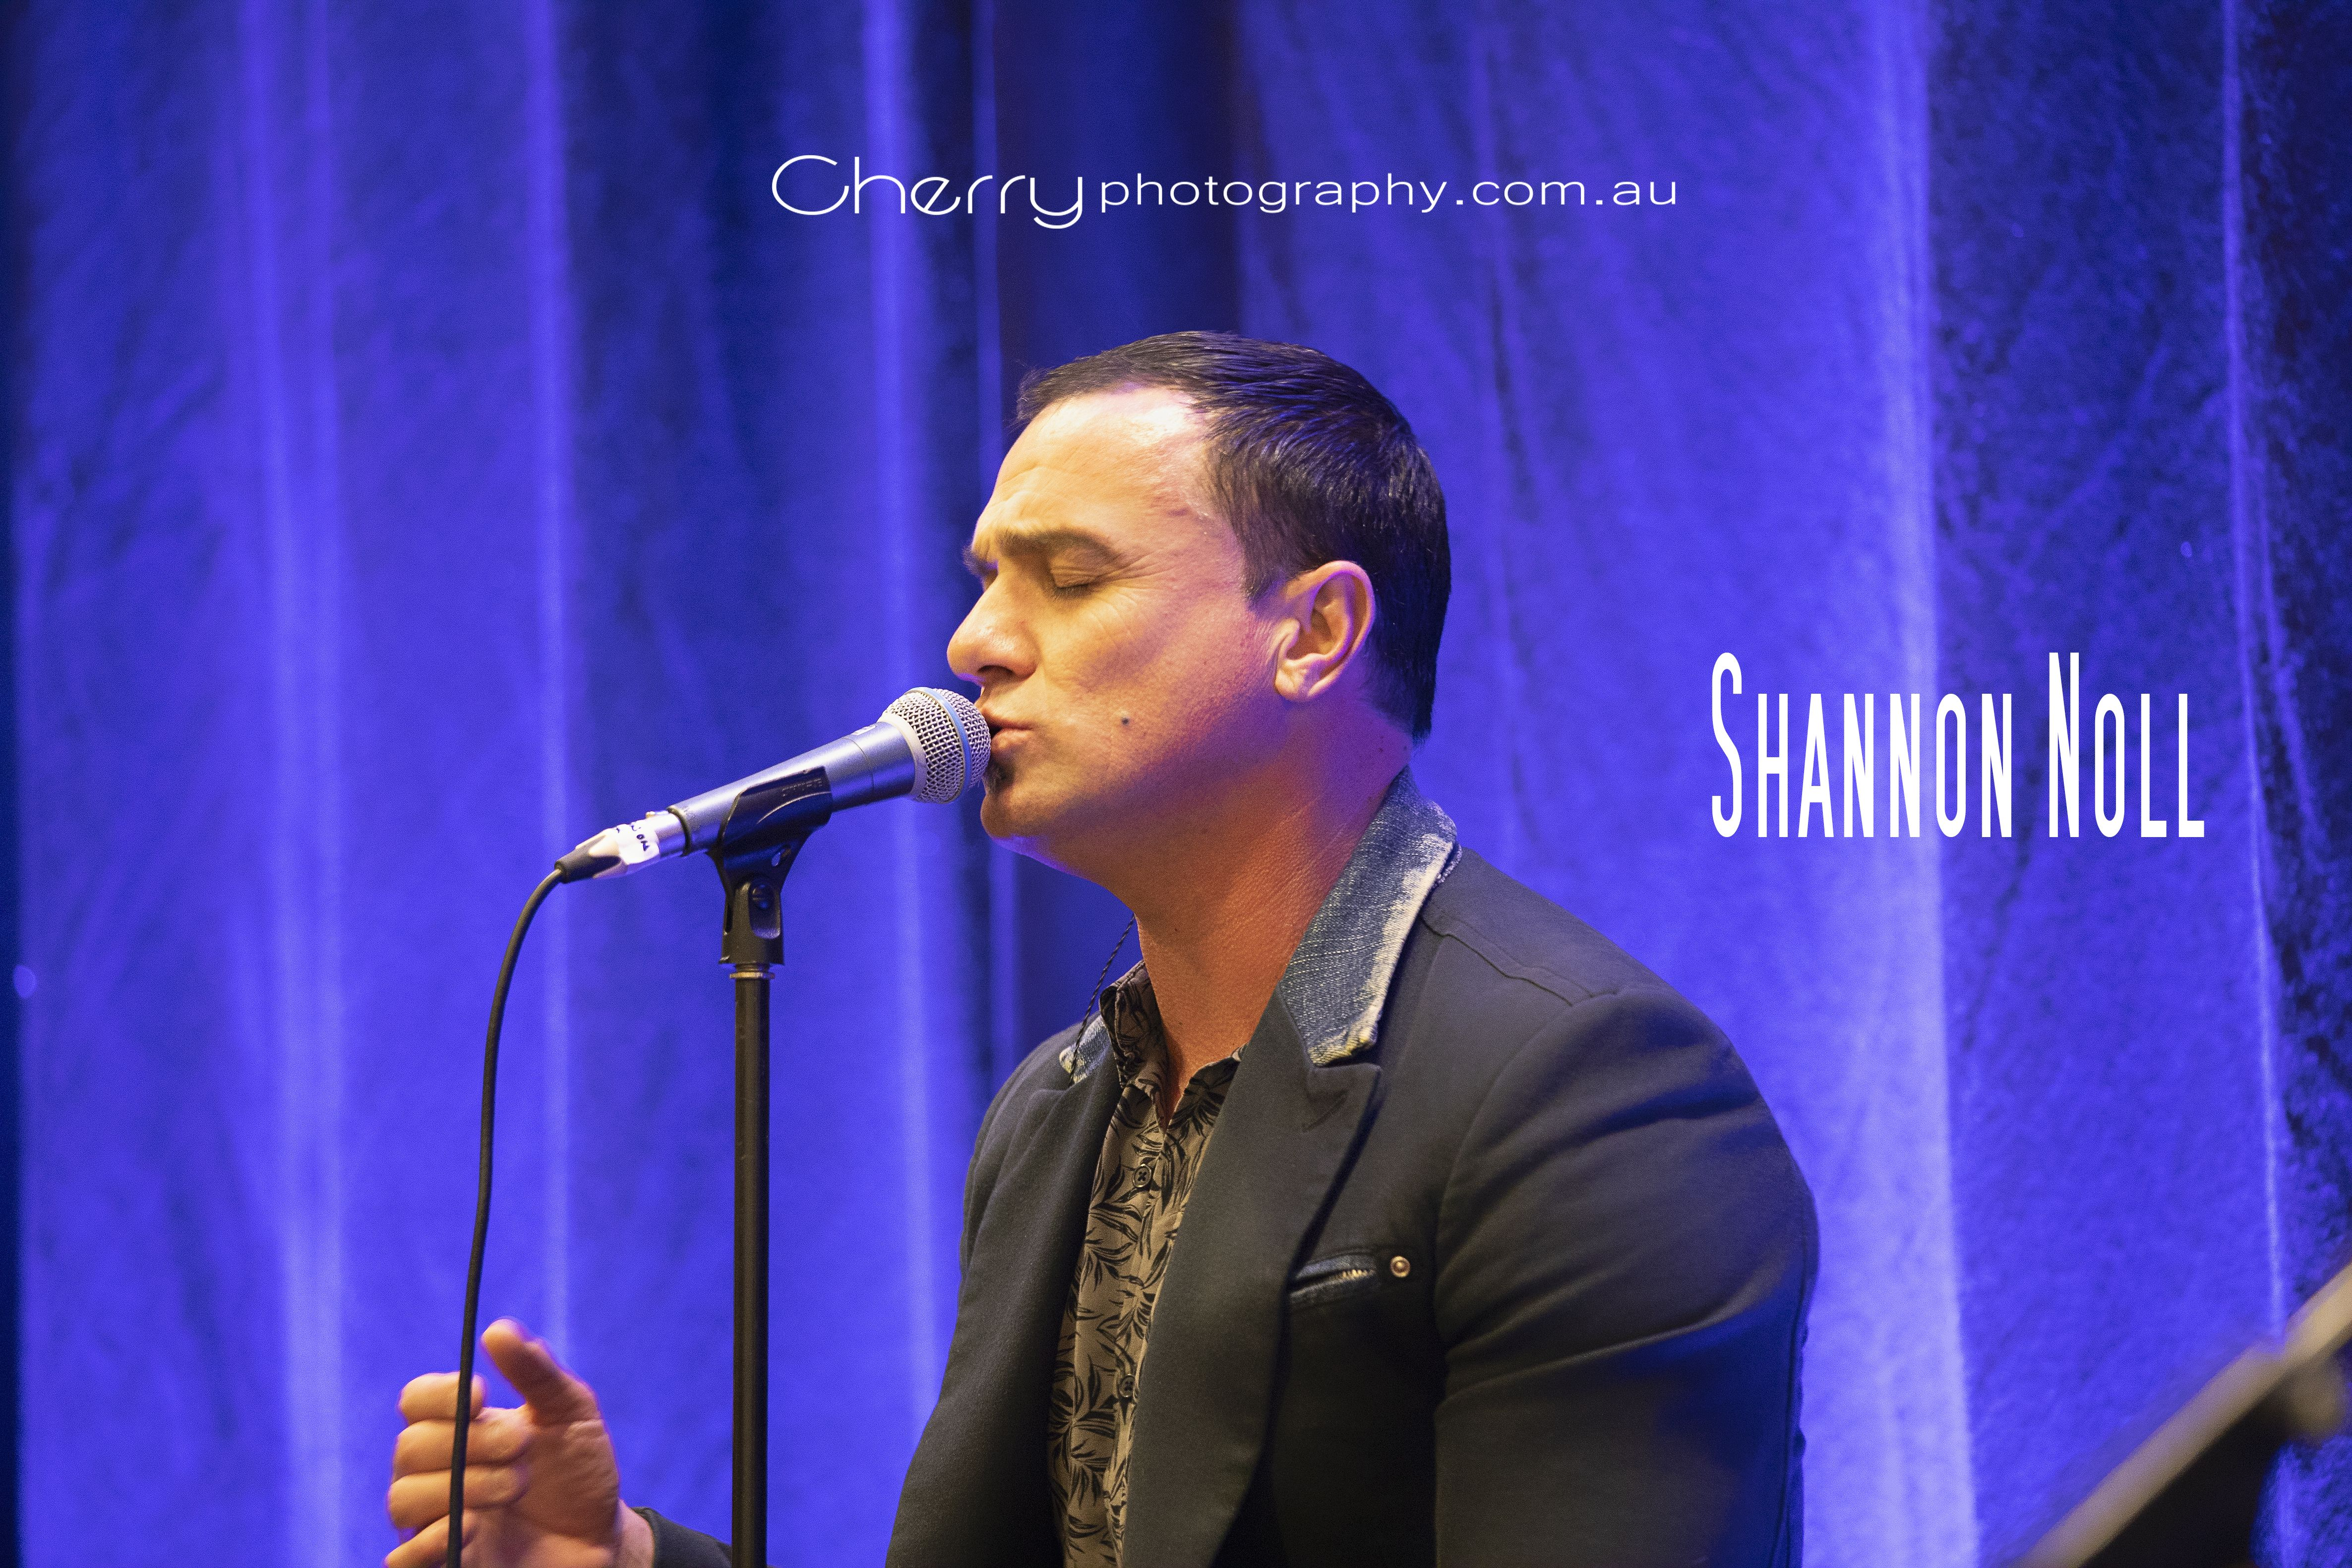 Great night @Glenn Twiddle with Georges St Pierre,Shannon Noll Love Brisbane Event Photography